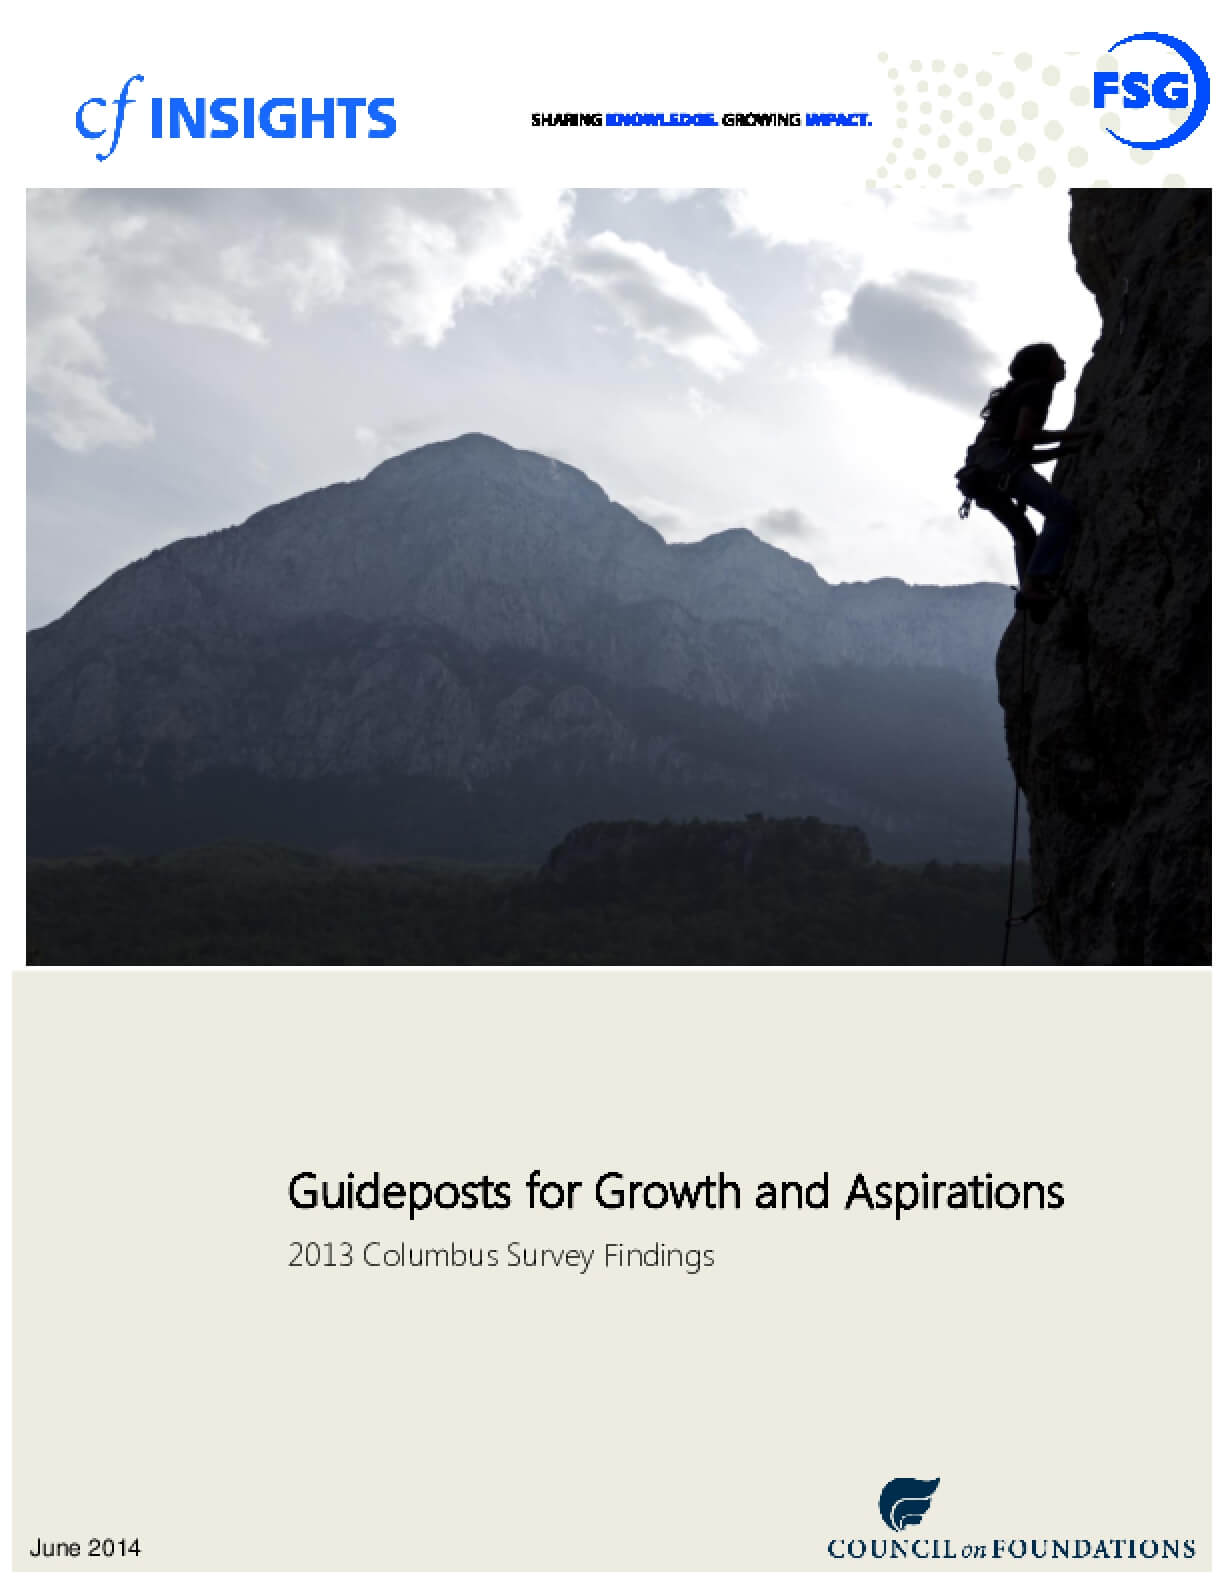 2013 Columbus Survey Results: Guideposts for Growth and Aspirations